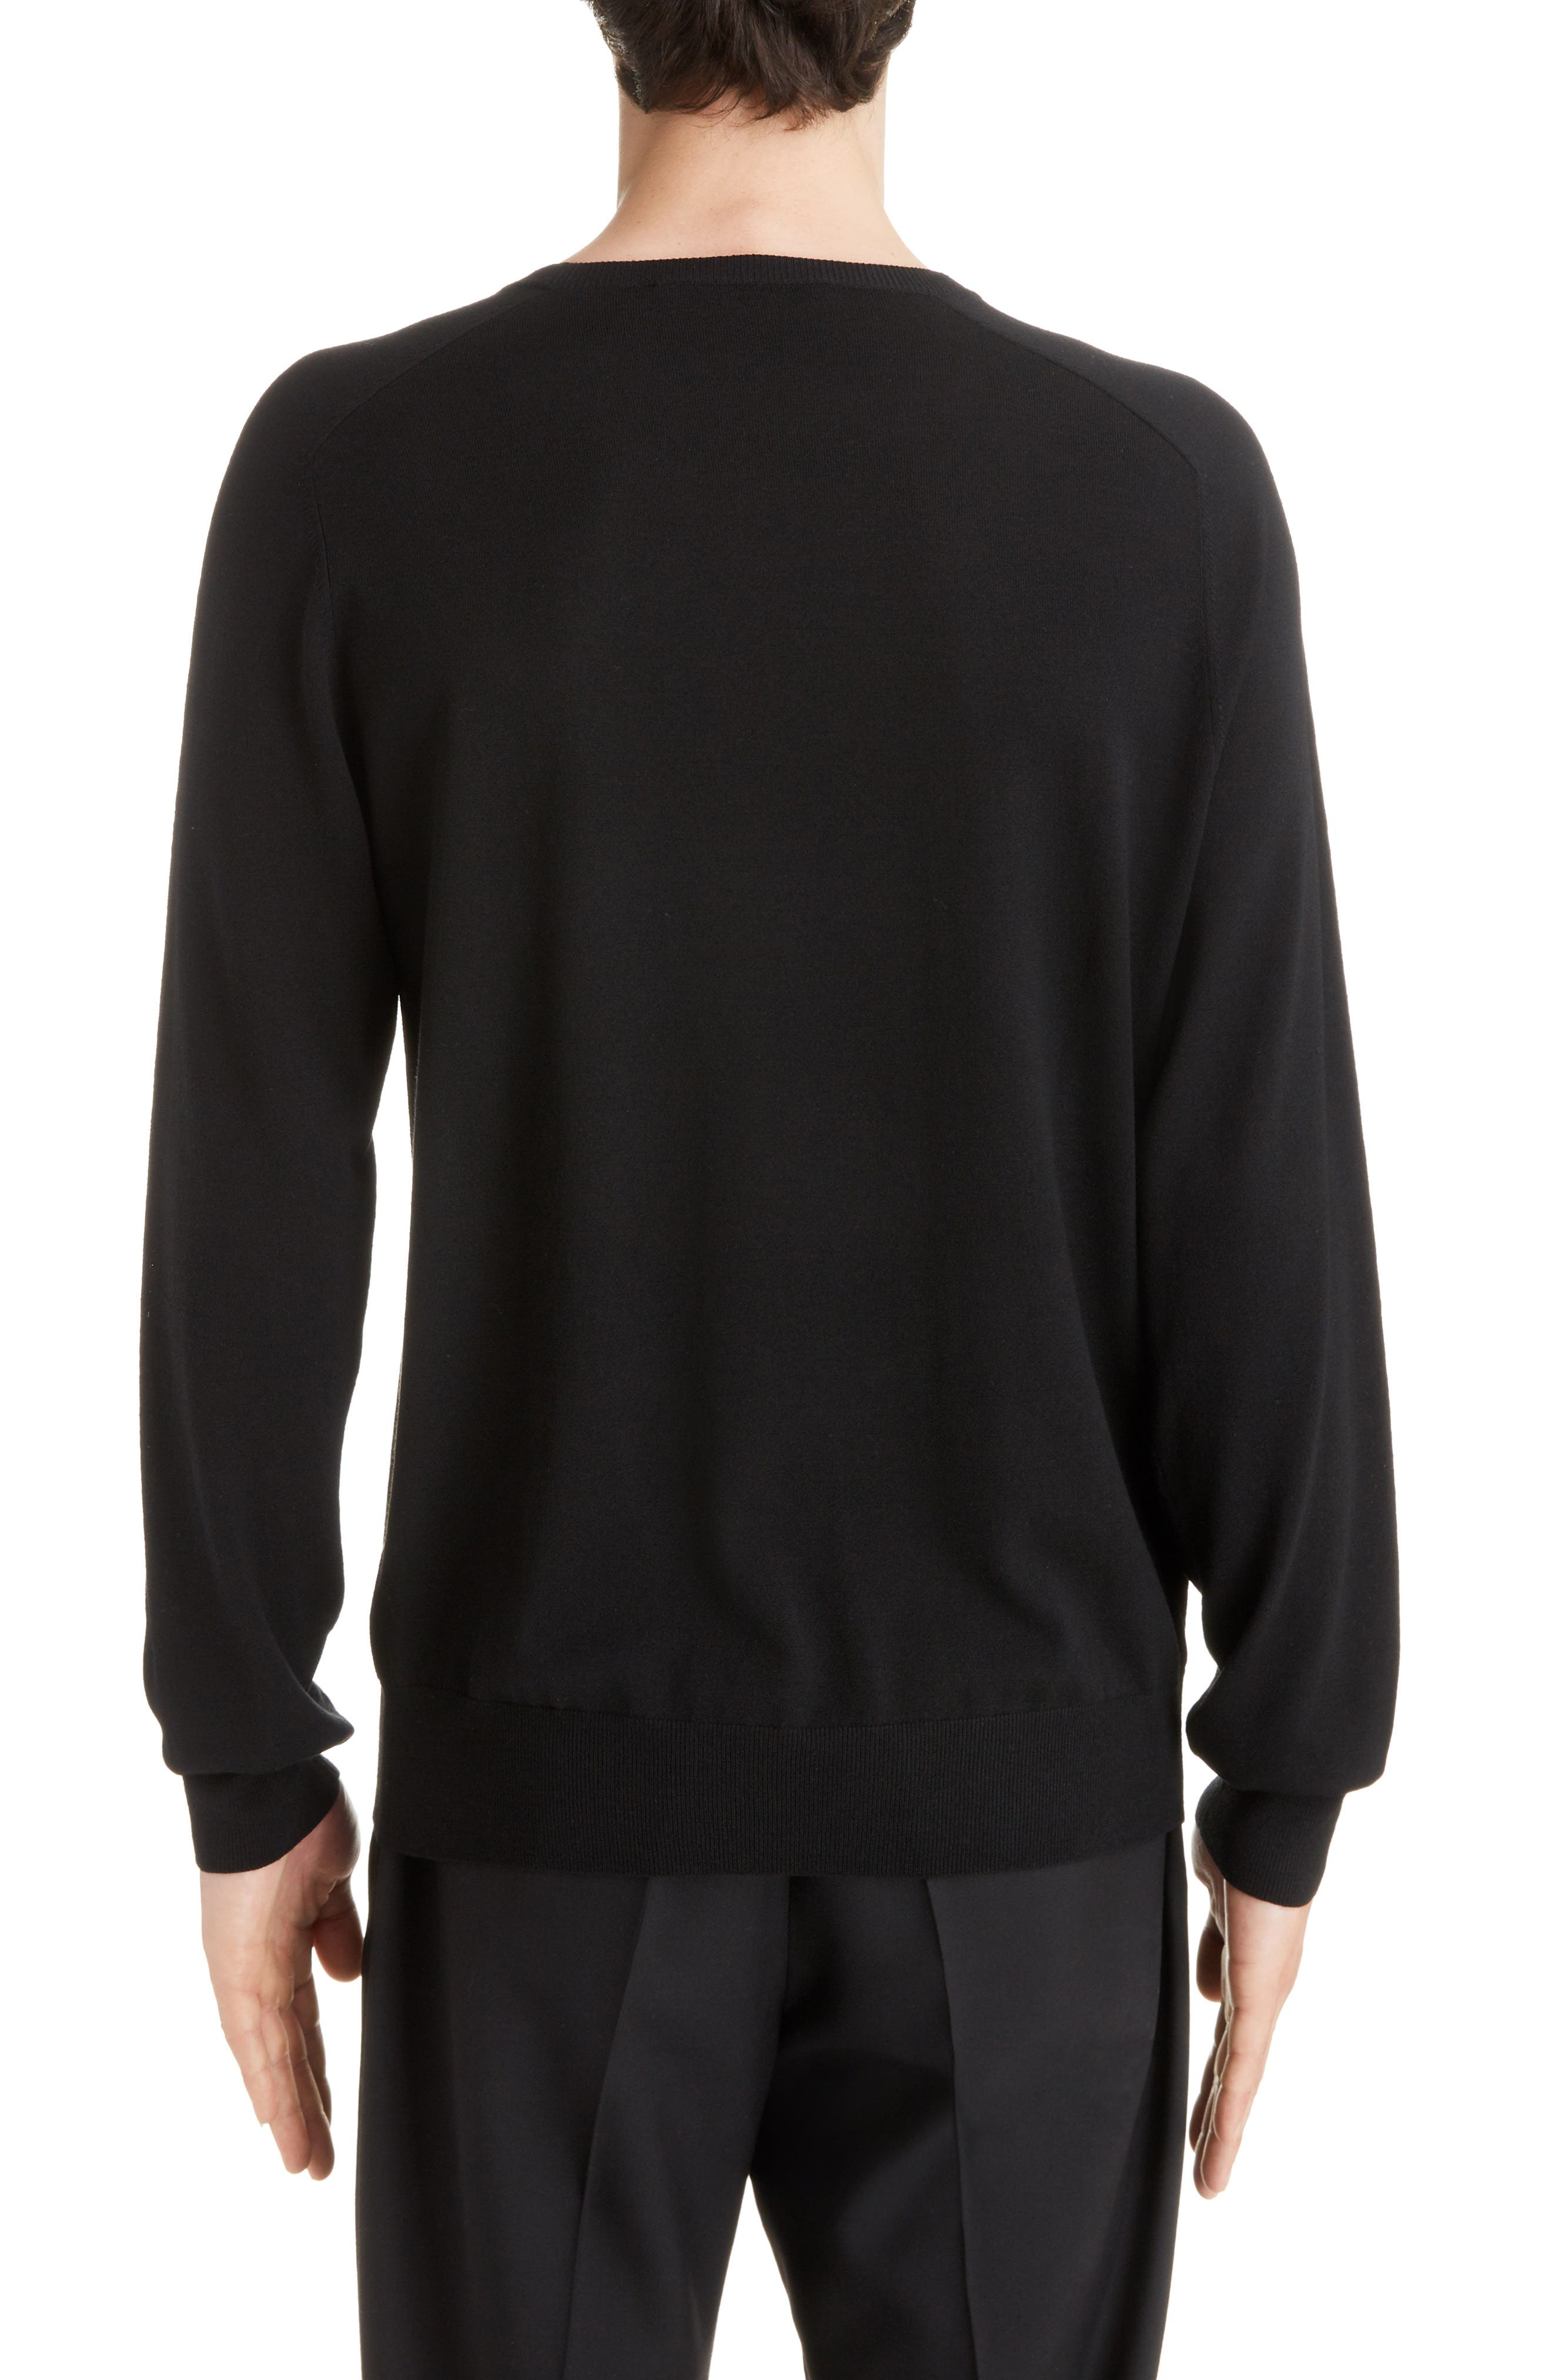 4G Wool Crewneck Sweater,                             Alternate thumbnail 2, color,                             BLACK